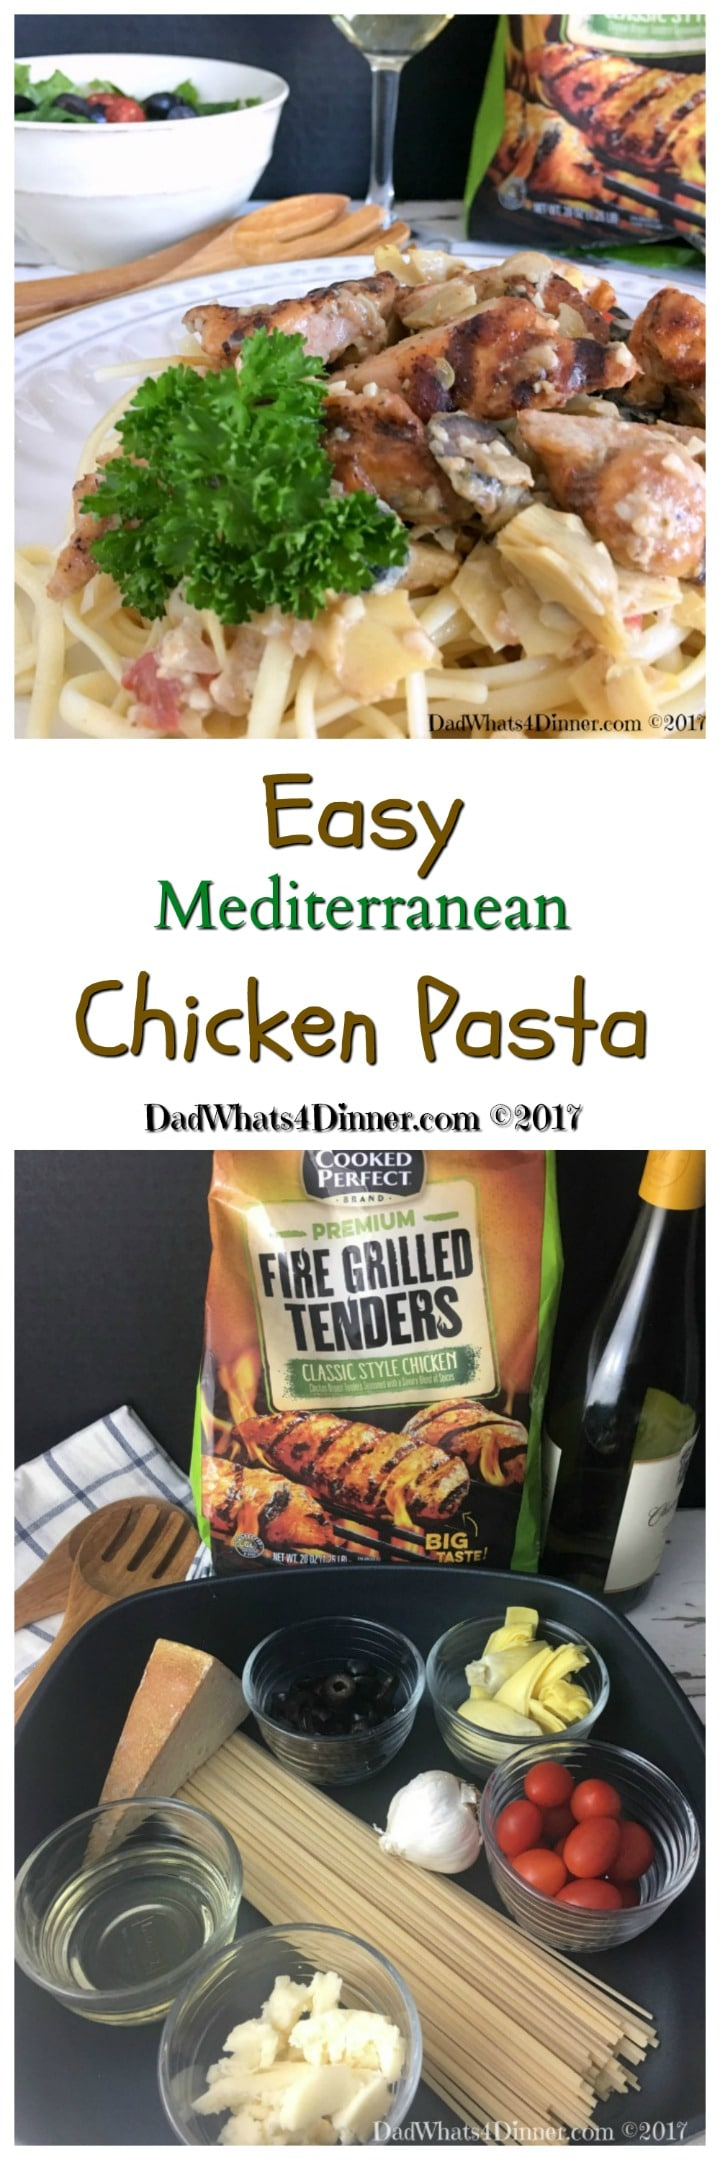 When you need a healthy, kid friendly, 30 minute meal try my Easy Mediterranean Chicken Pasta.  #ad #recipe @cookedperfect @kroger